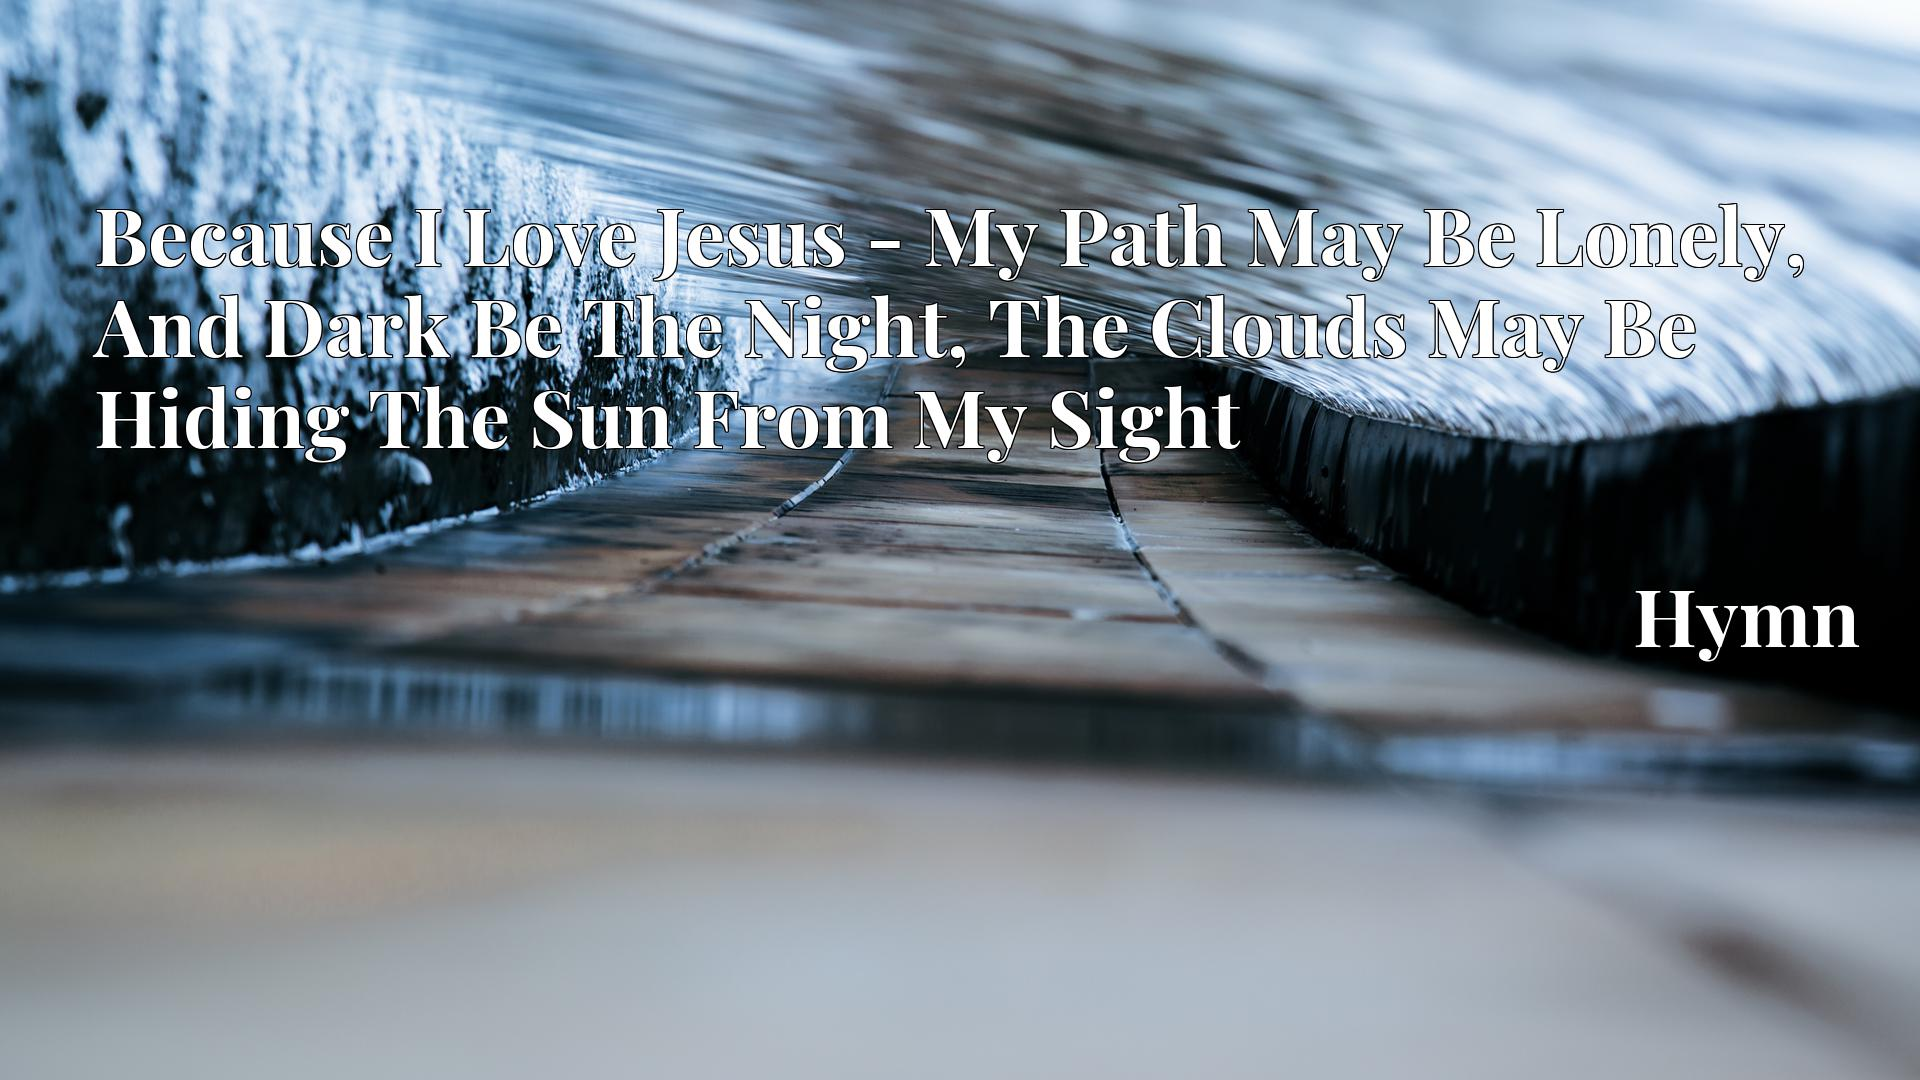 Because I Love Jesus - My Path May Be Lonely, And Dark Be The Night, The Clouds May Be Hiding The Sun From My Sight Hymn